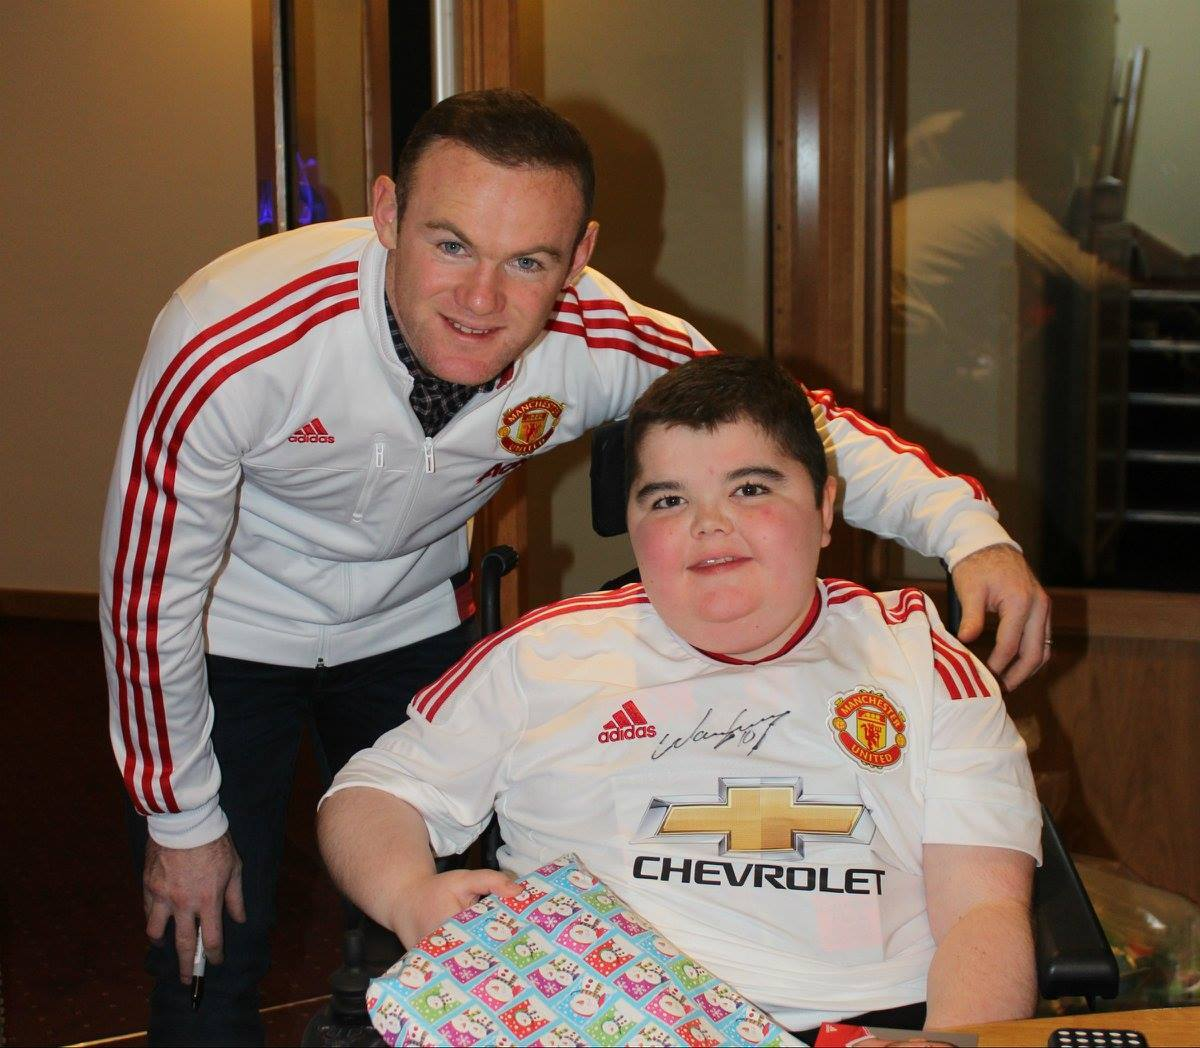 All the best in your retirement @waynerooney, and congratulations on your new appointment as @dcfcofficial manager 👏⚽  Thank you for being a longstanding supporter of the Foundation 🔴